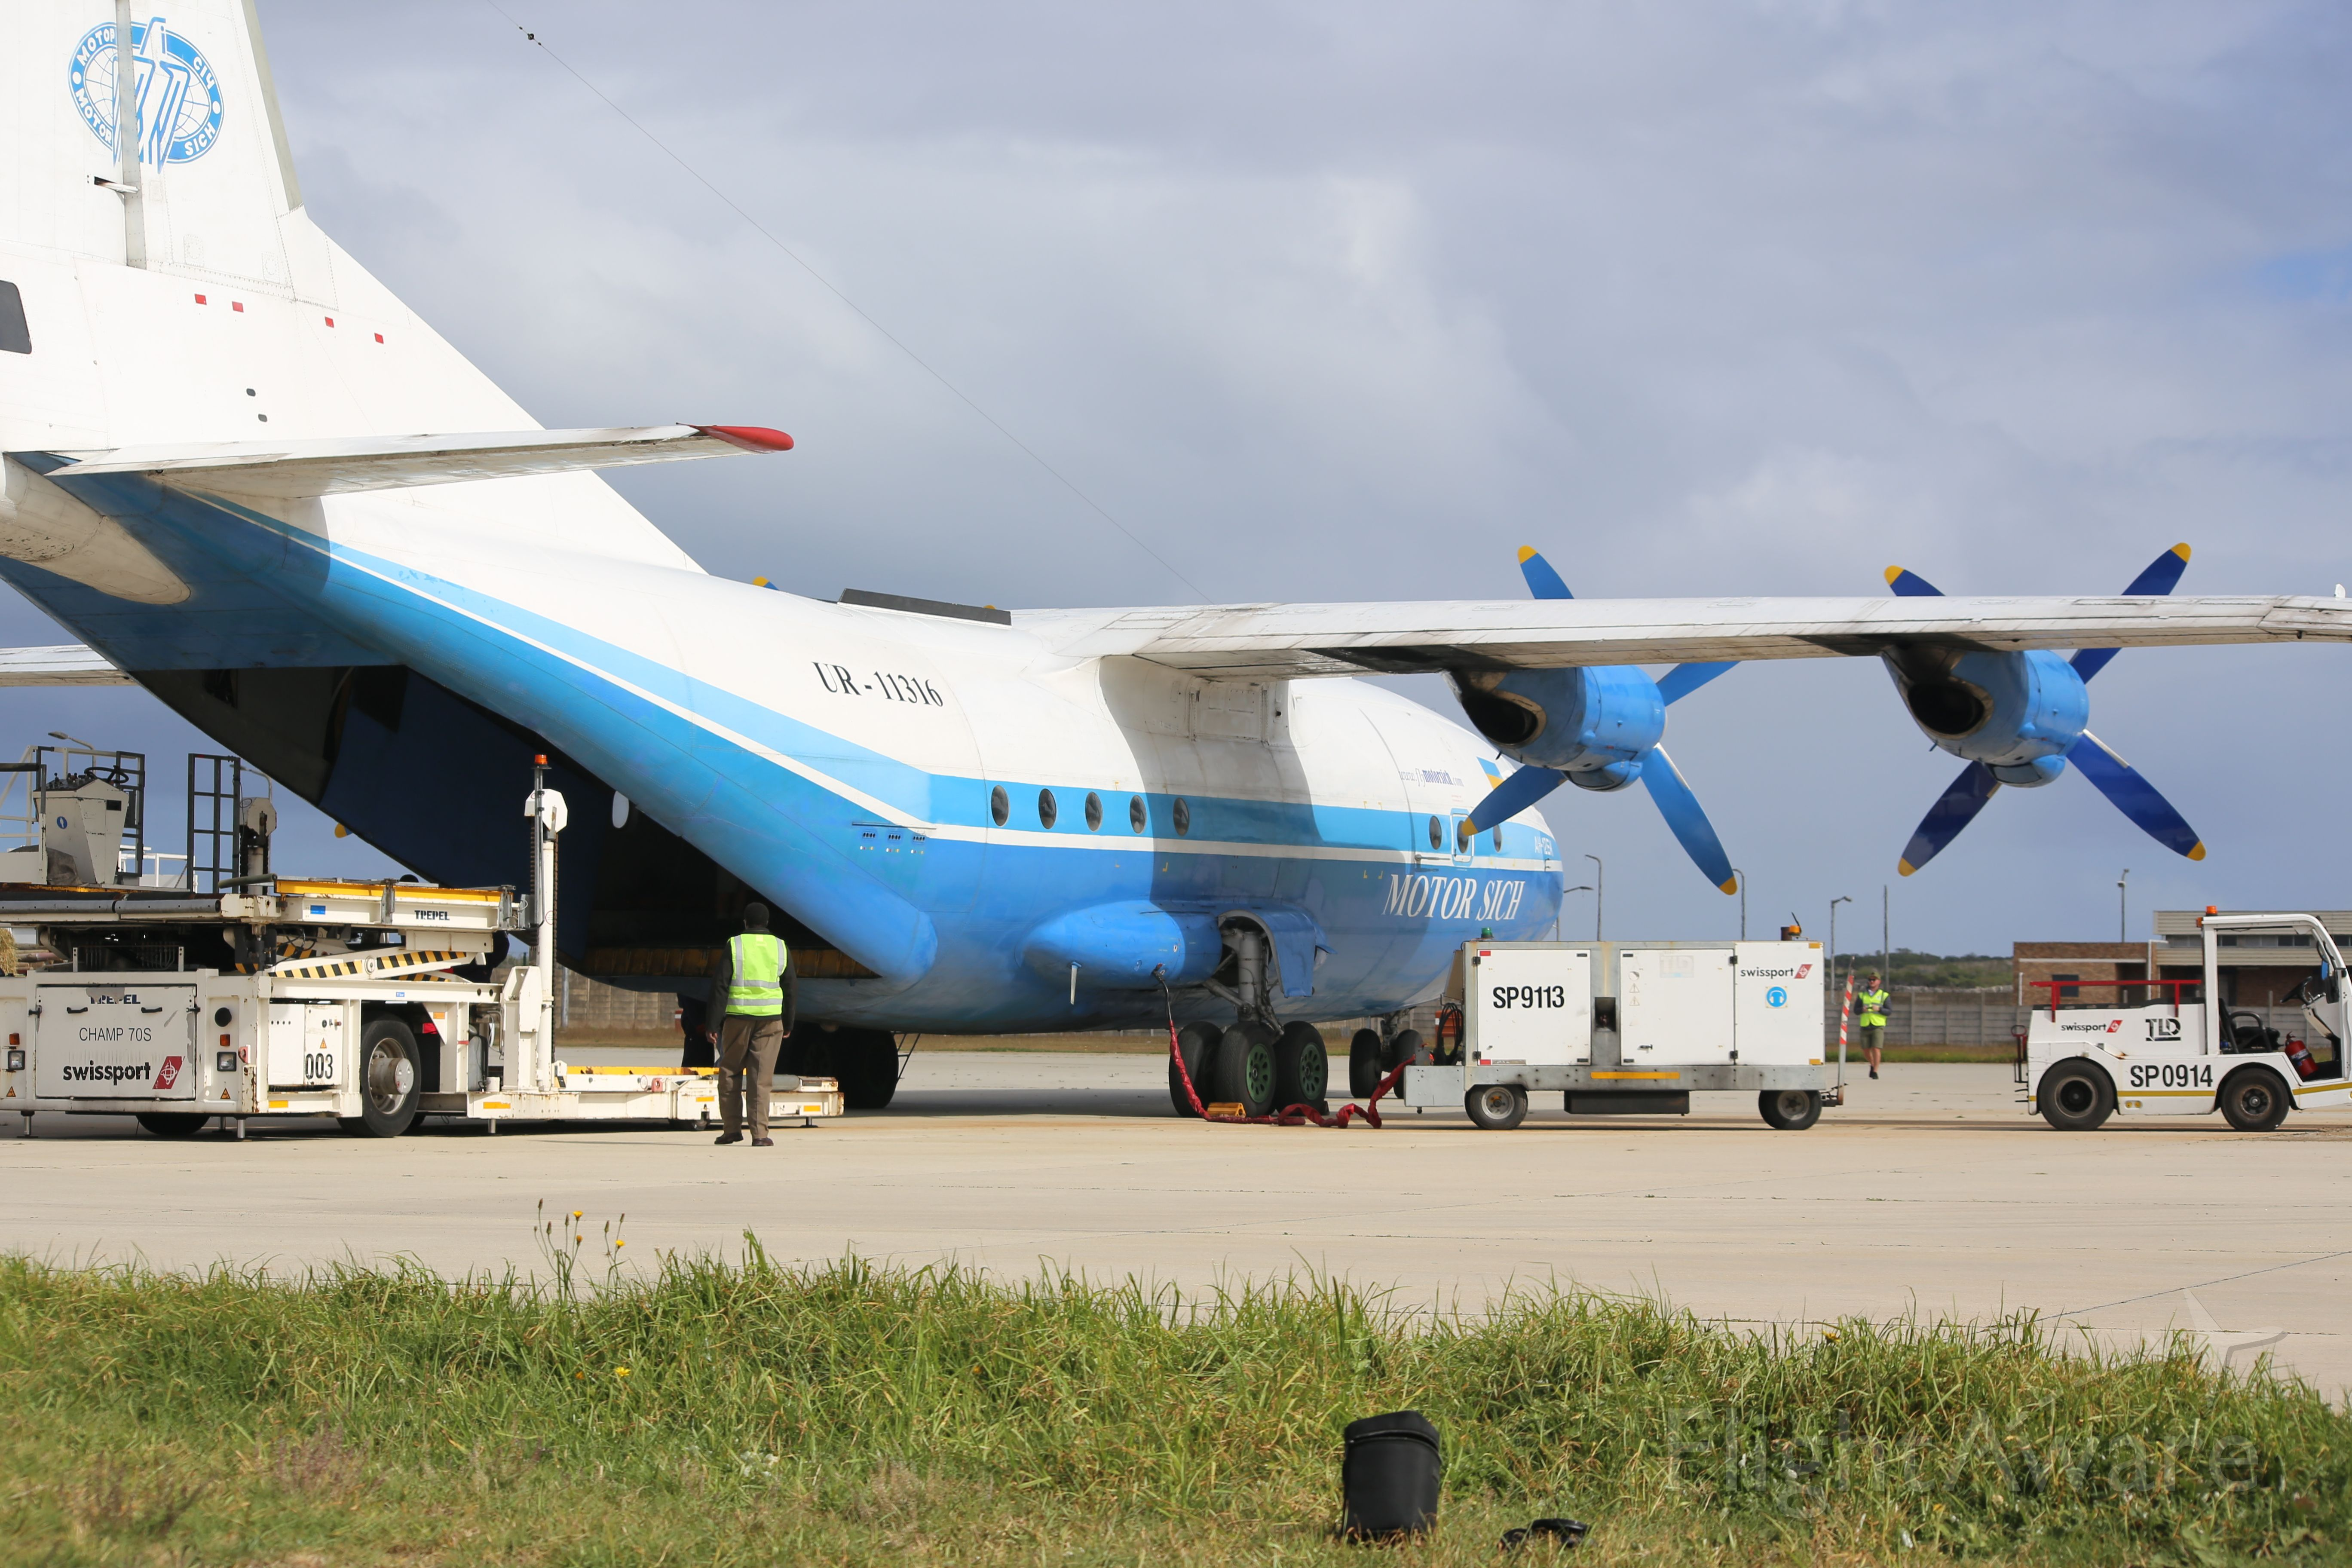 Antonov An-12 (UR-11316) - A special visitor to our small local airport today, Thursday 3 May 2018. Arrived to come collect a very special cargo, dear to the hearts of all South Africans.